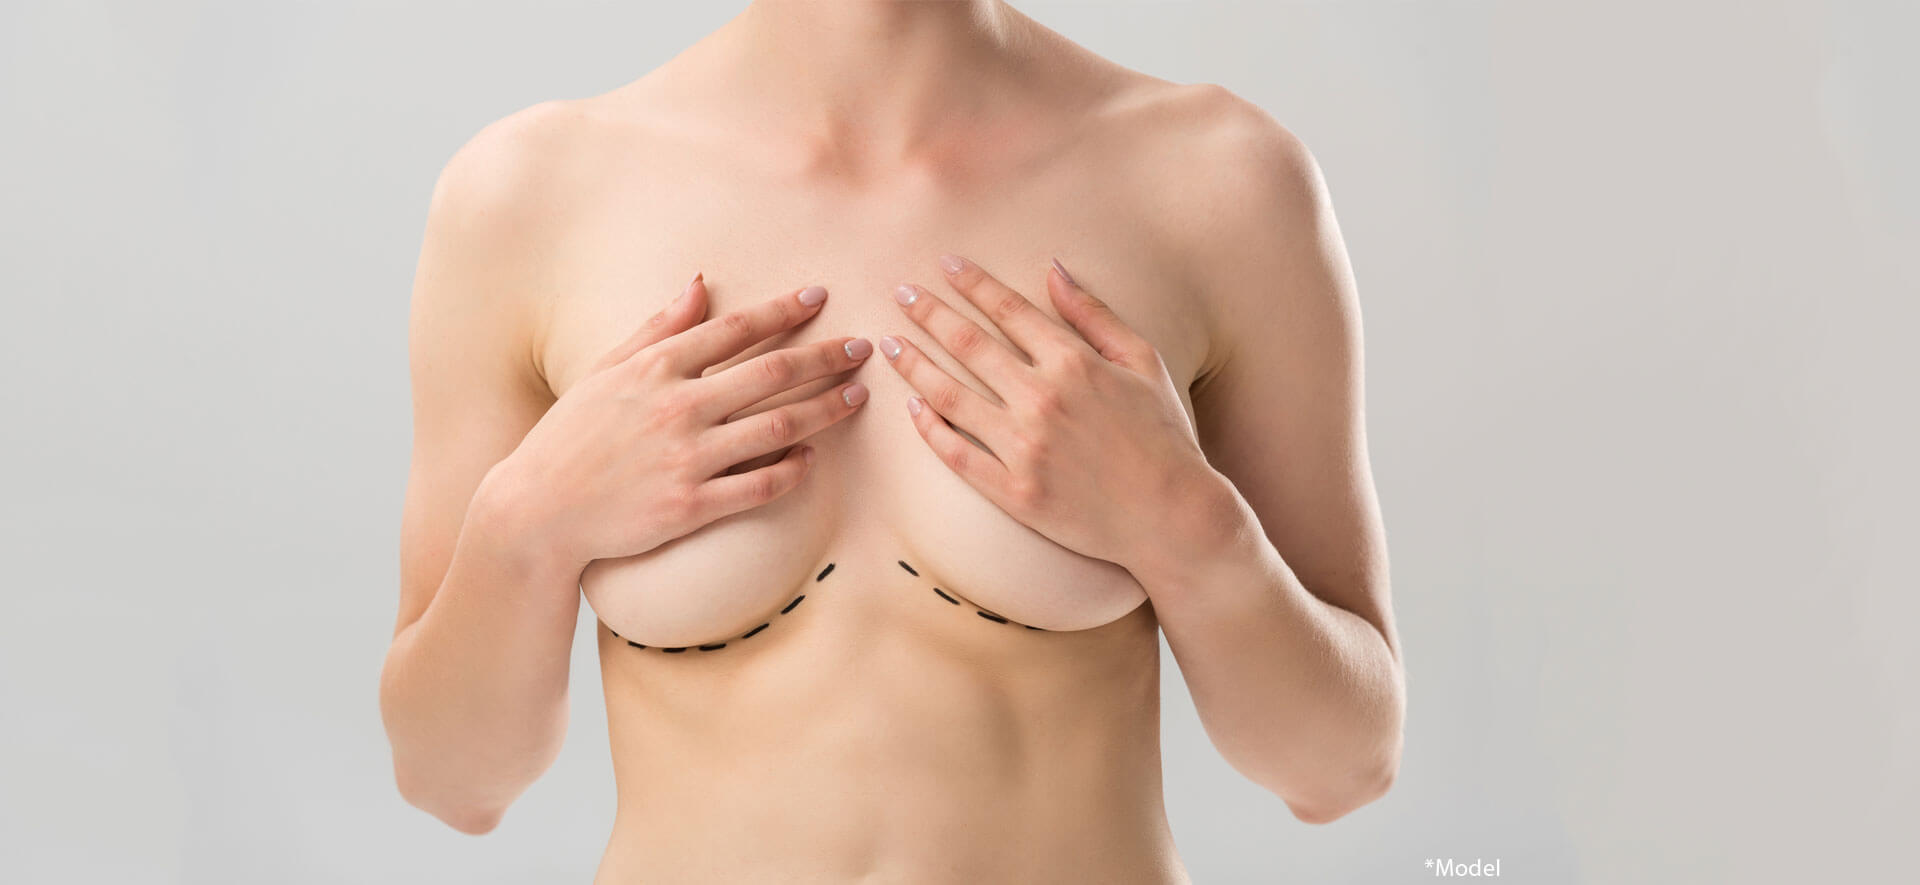 Partial view of naked woman with marks under breast